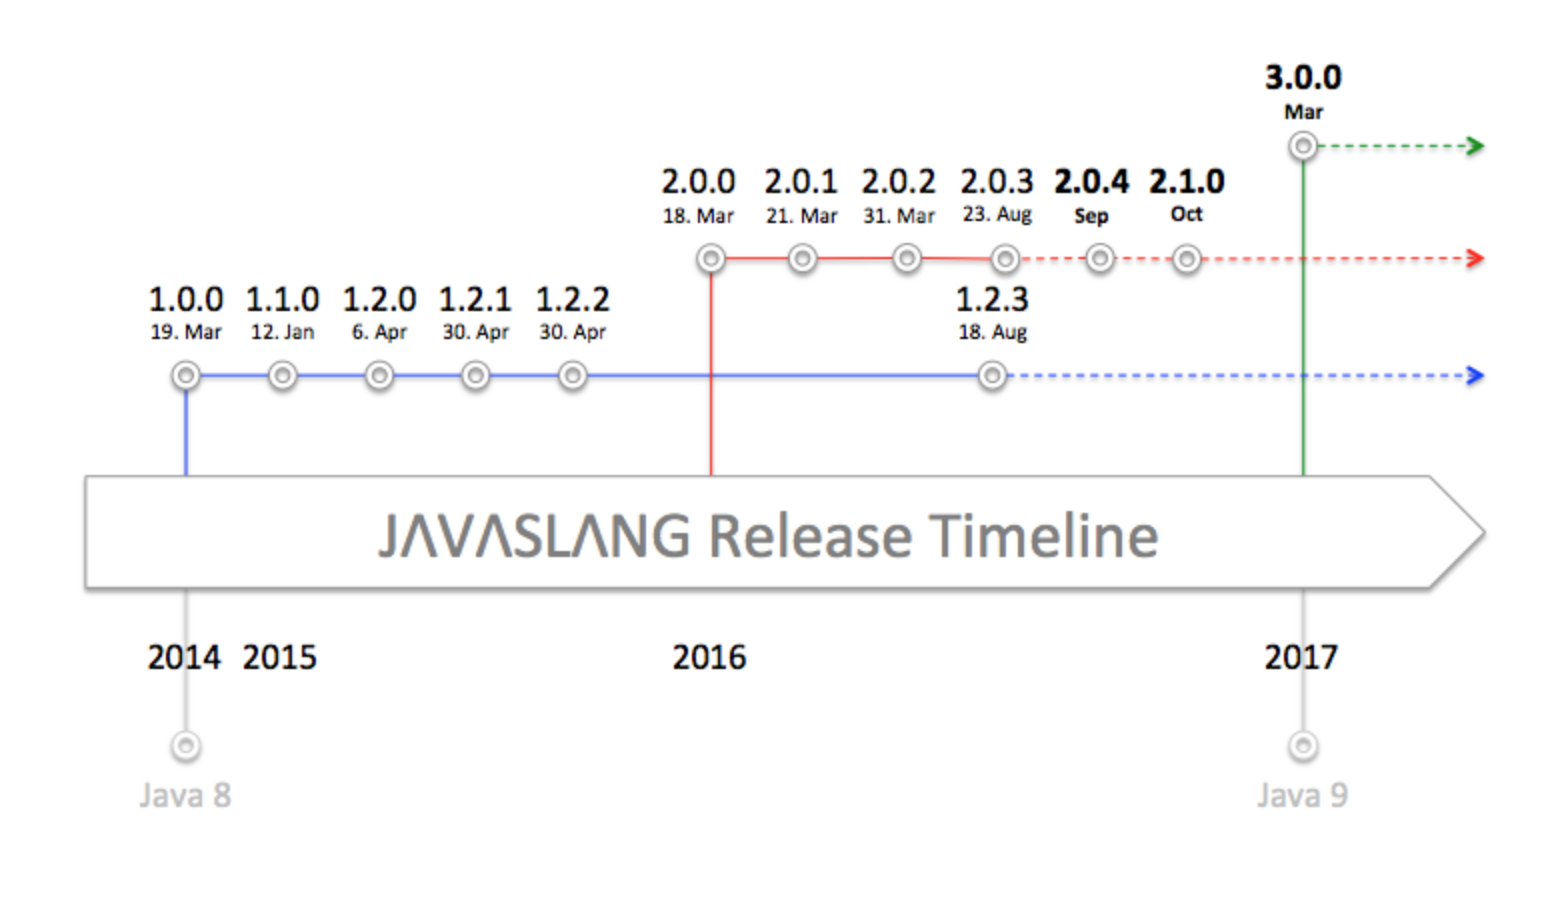 Javaslang 3.0 roadmap